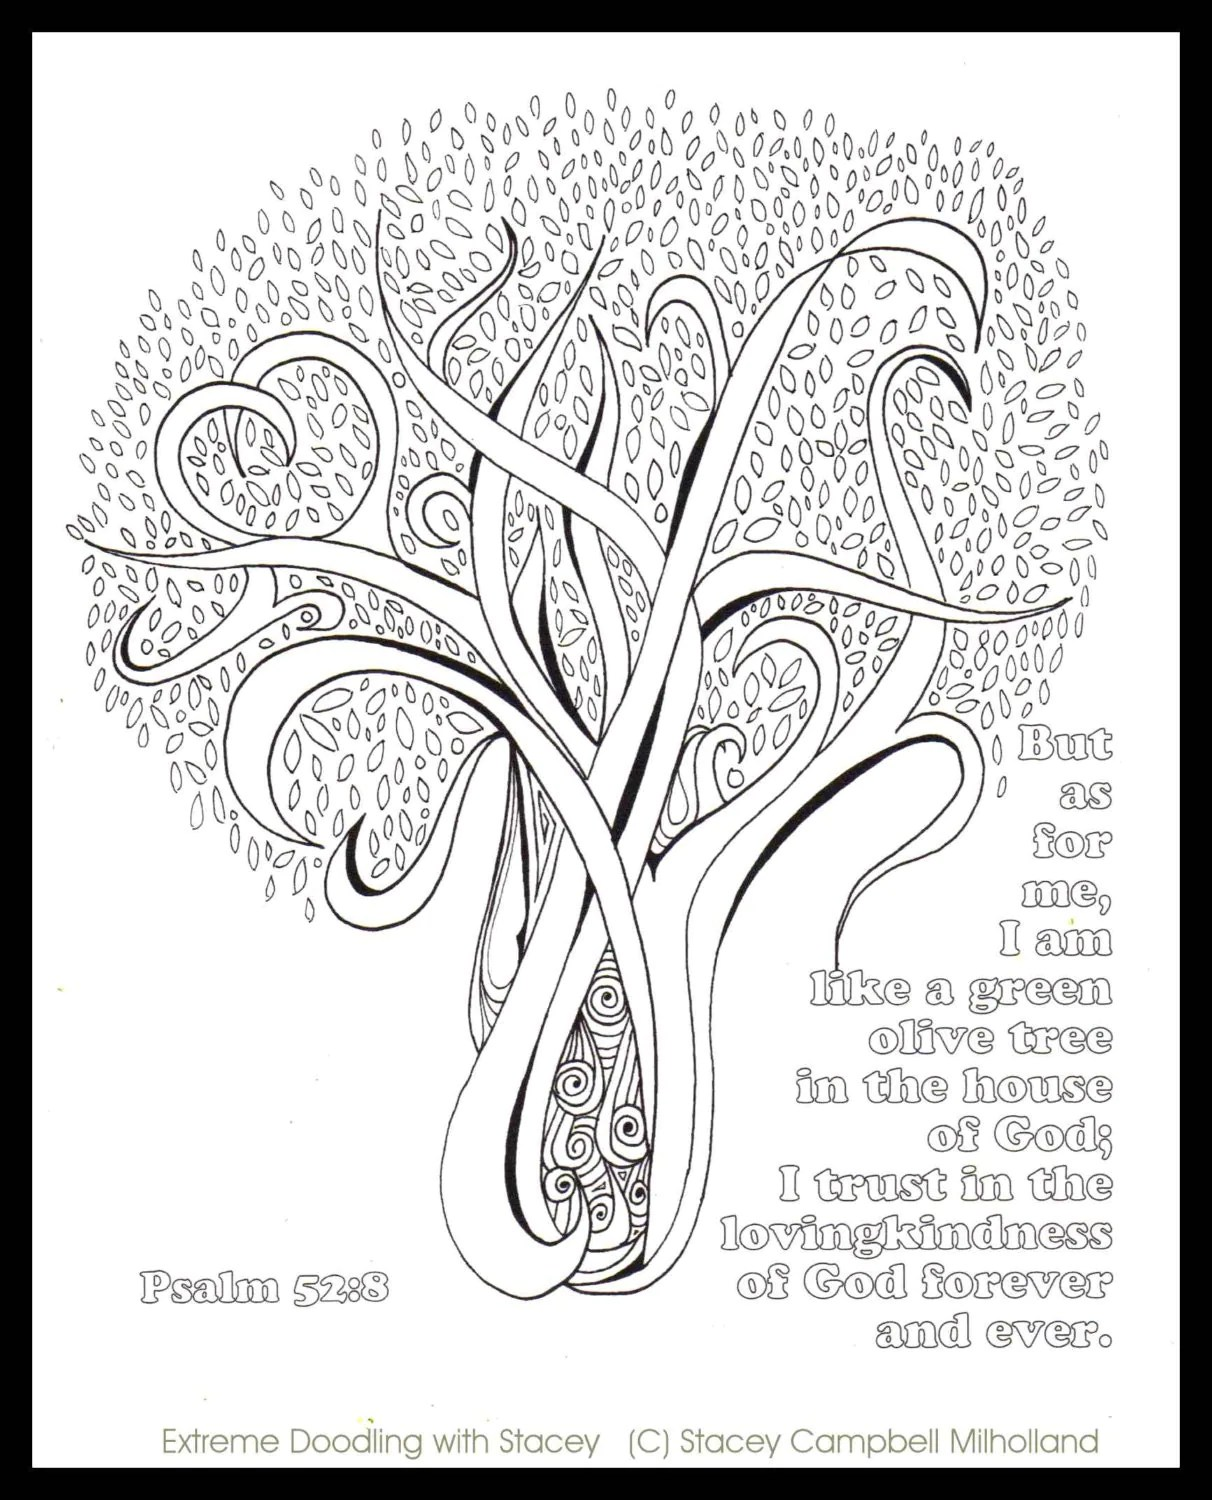 Olive Tree Coloring Page Digital Download Psalm 52:8